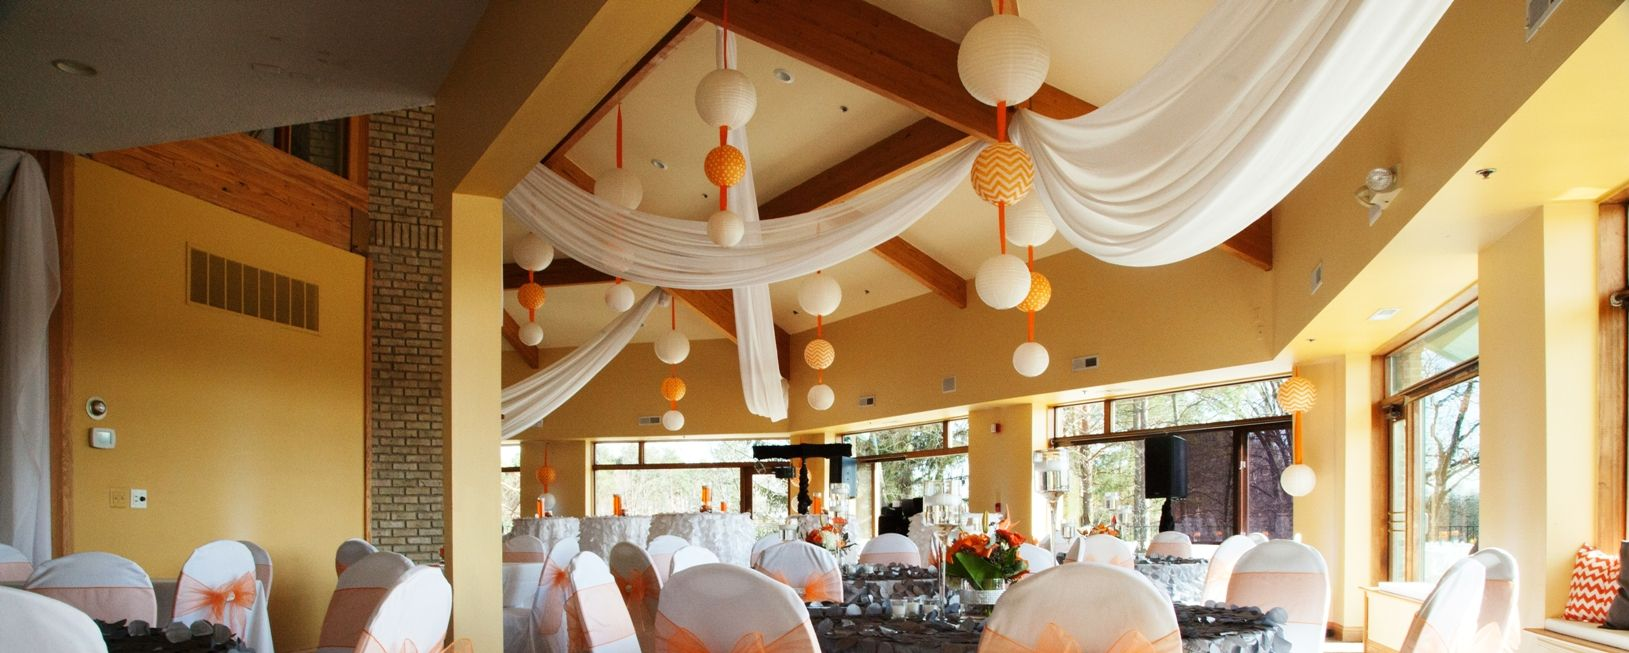 Wedding Venue Whispering Pines Golf Club And Is In Pinckney Michigan This